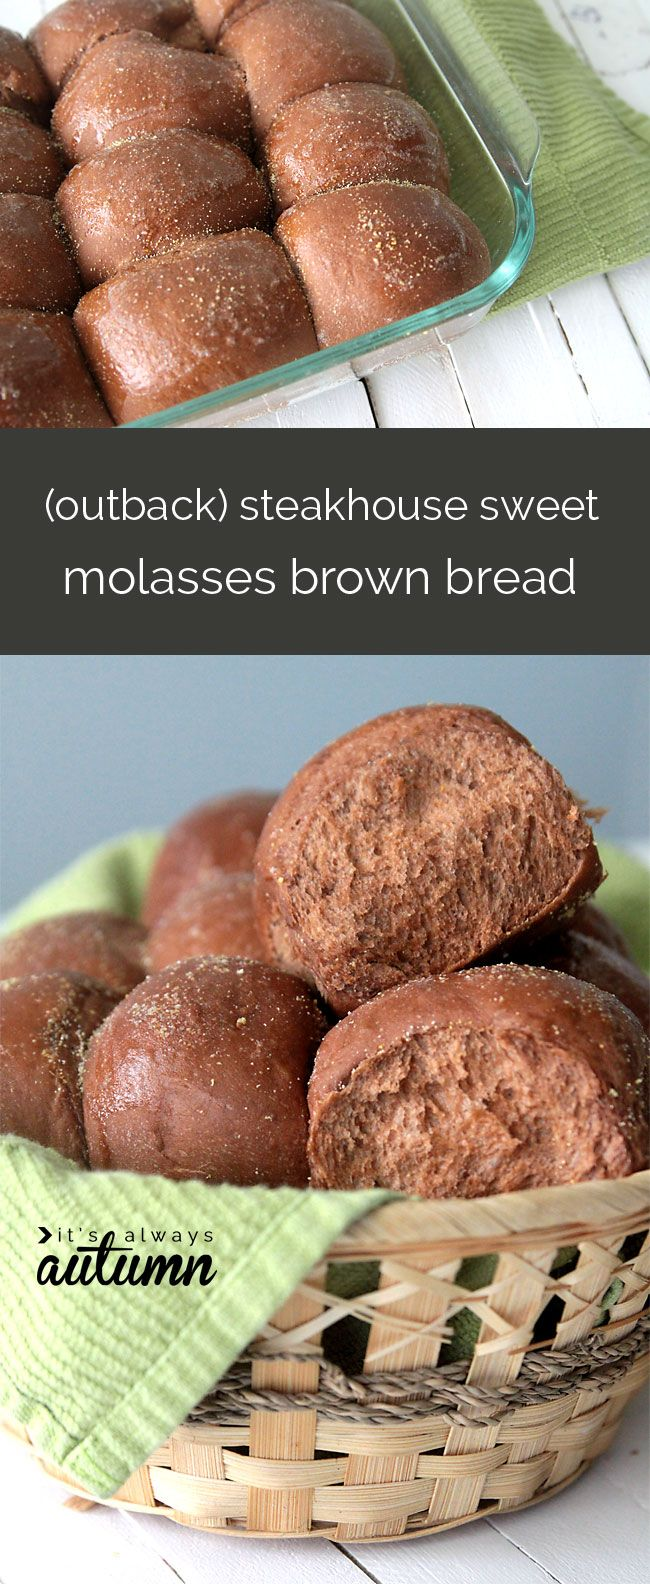 Brown-Bread-Sweet-Molasses-Steakhouse-Outback-Copycat-Recipe-Dinner-Rolls by itsalwaysautumn #Bread #Rolls #Honey #Cocoa